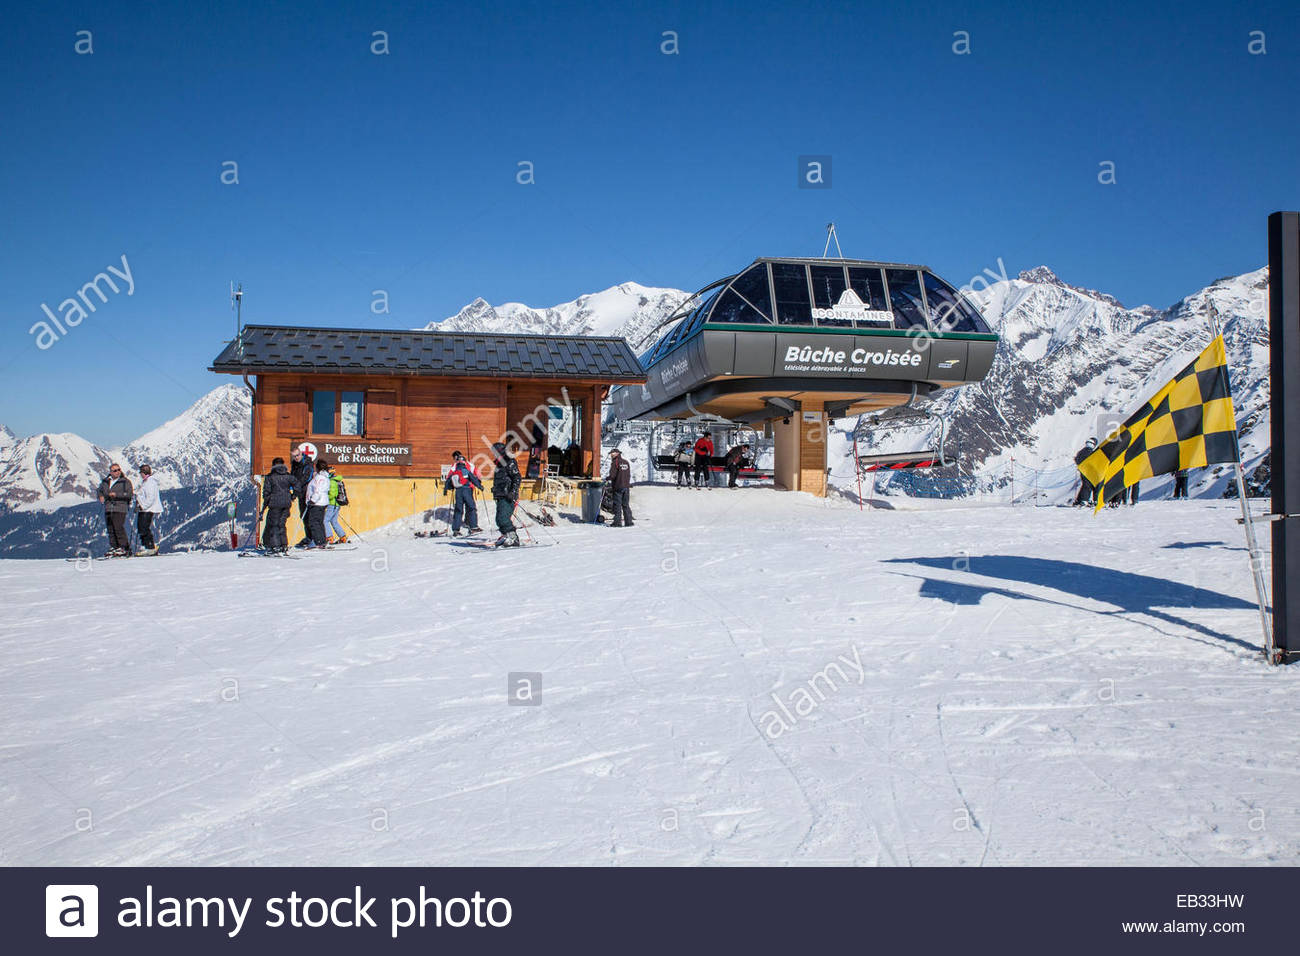 Contamines-Montjoie, arrival station for the chair lift. - Stock Image